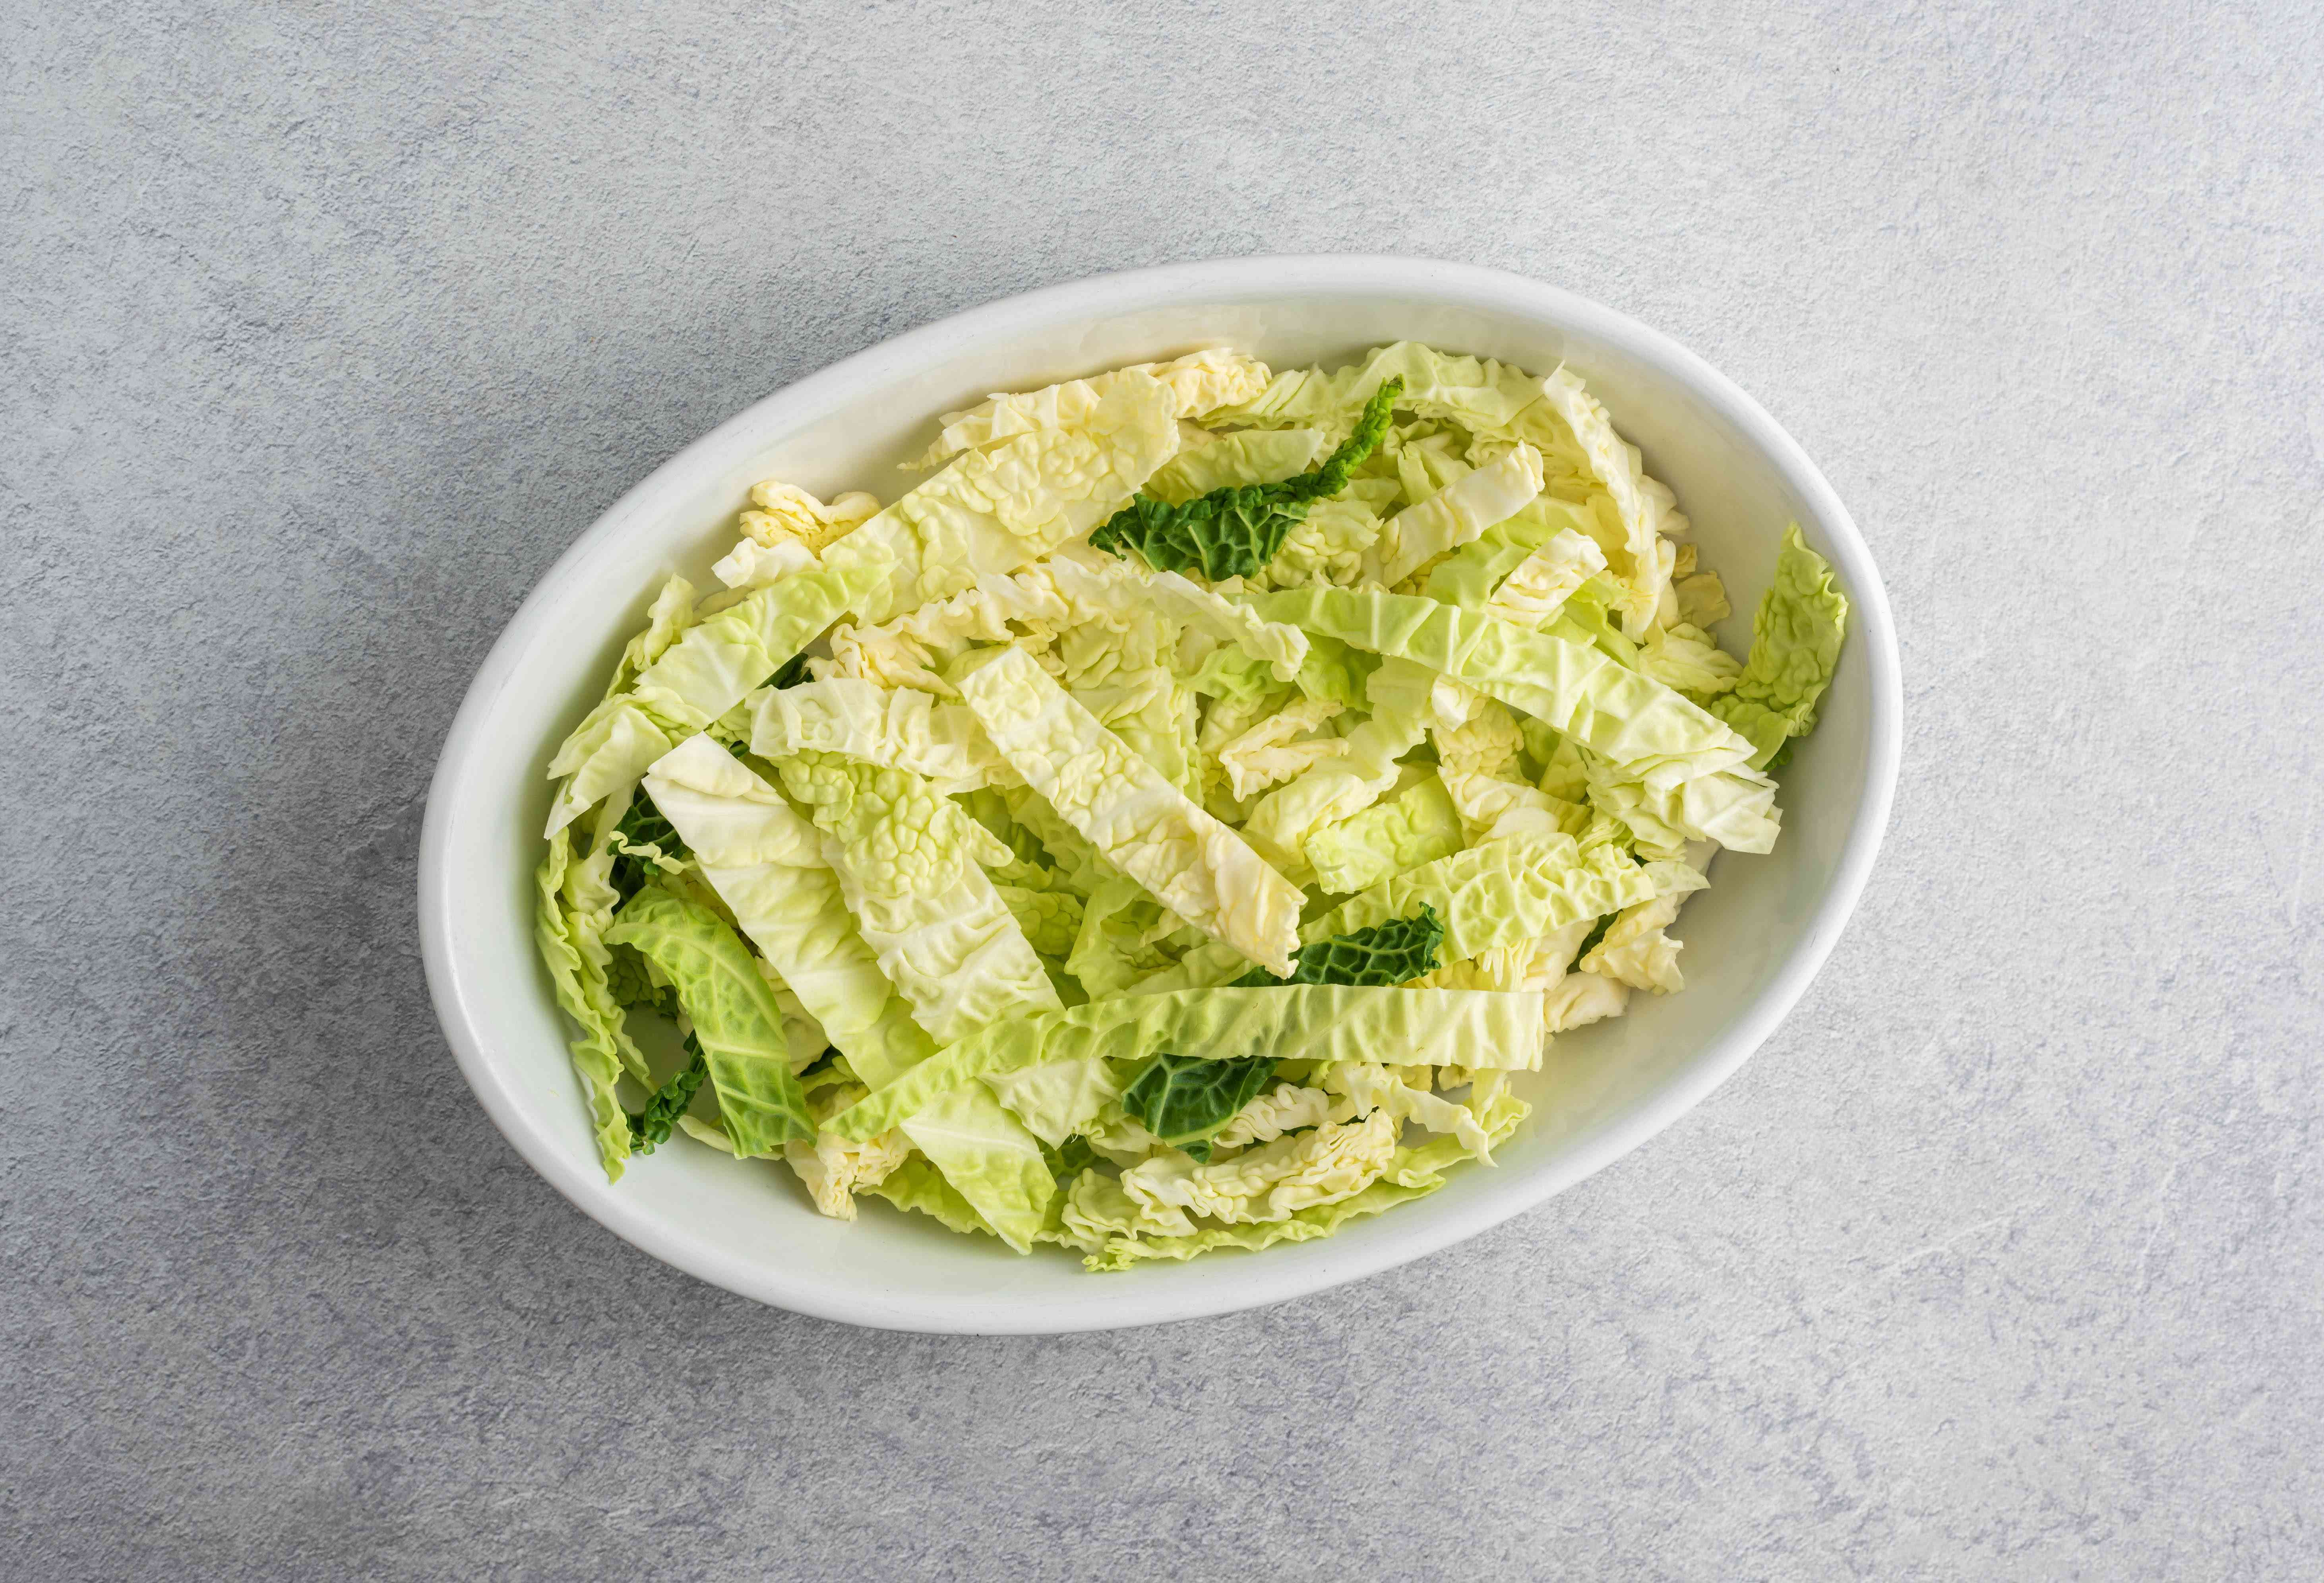 Thinly sliced cabbage in a white oval casserole dish